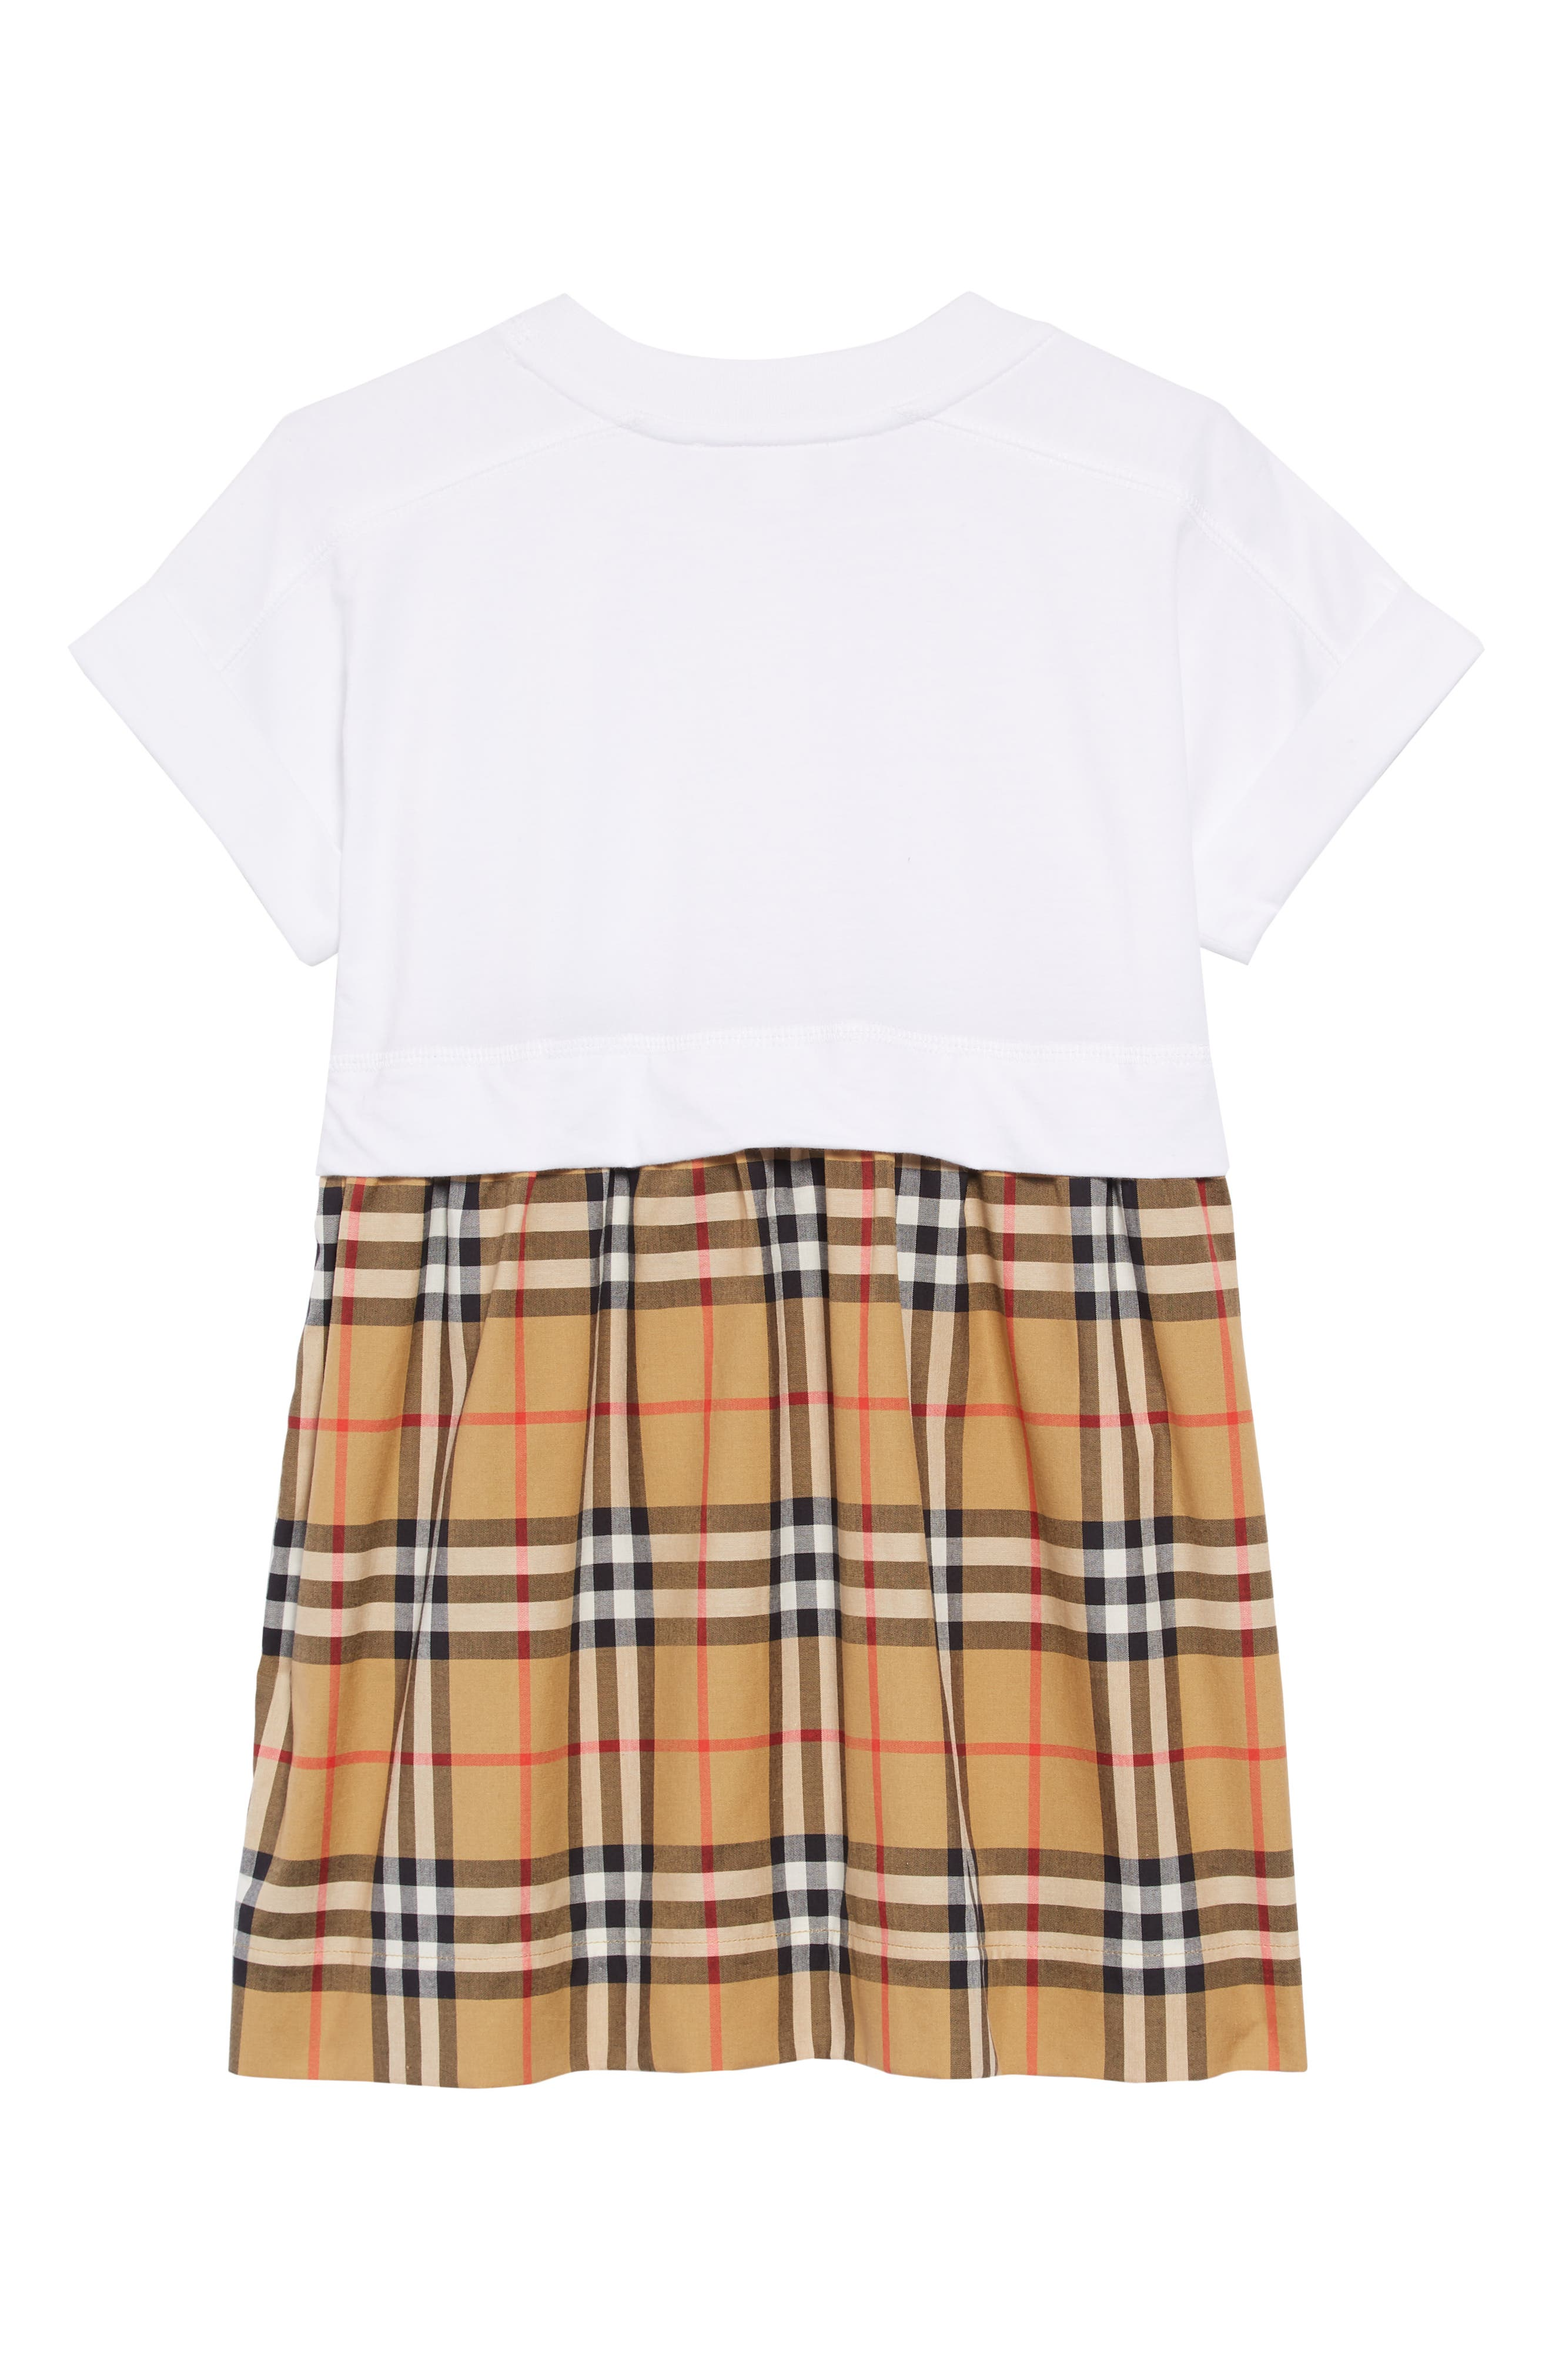 BURBERRY,                             Vintage Check Popover Dress,                             Alternate thumbnail 2, color,                             WHITE